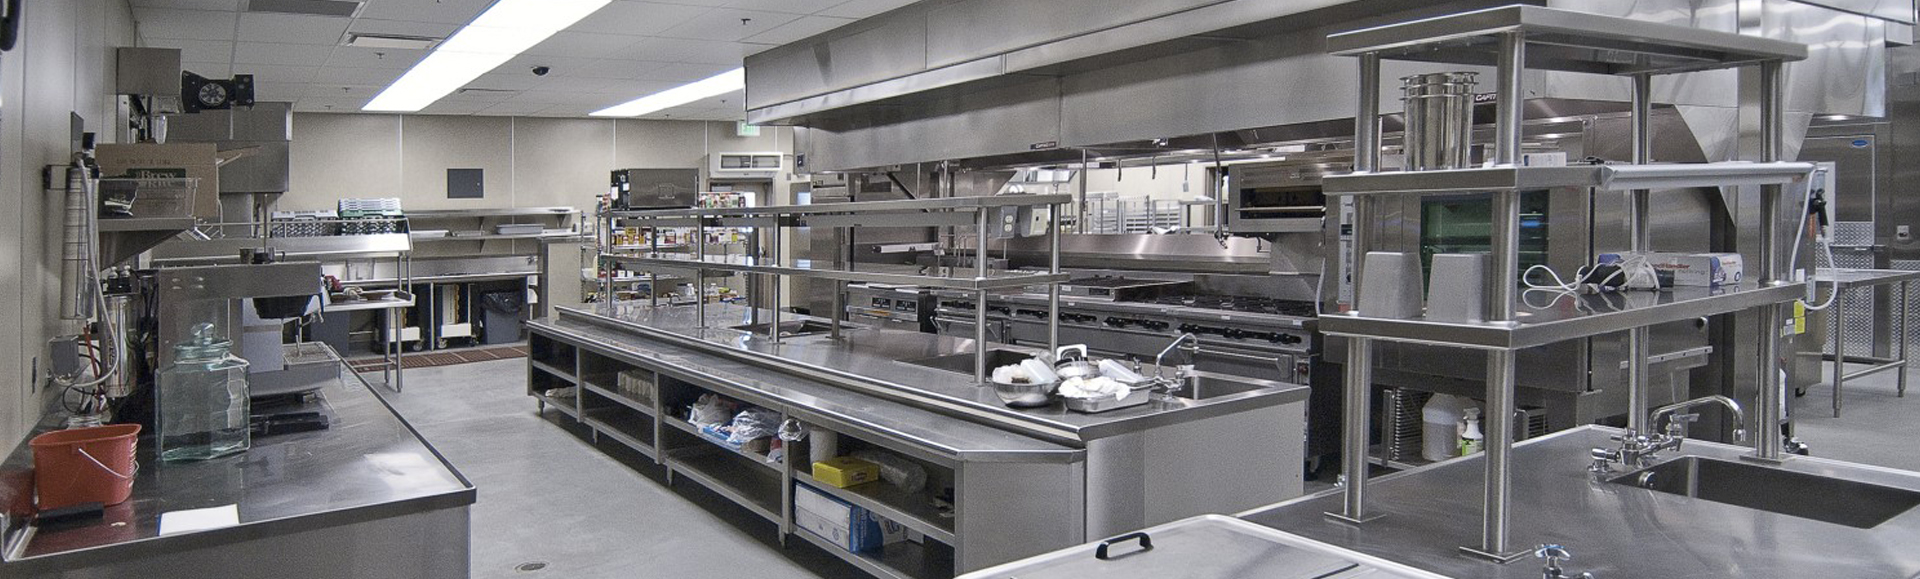 COMMERCIAL KITCHEN REPAIRS